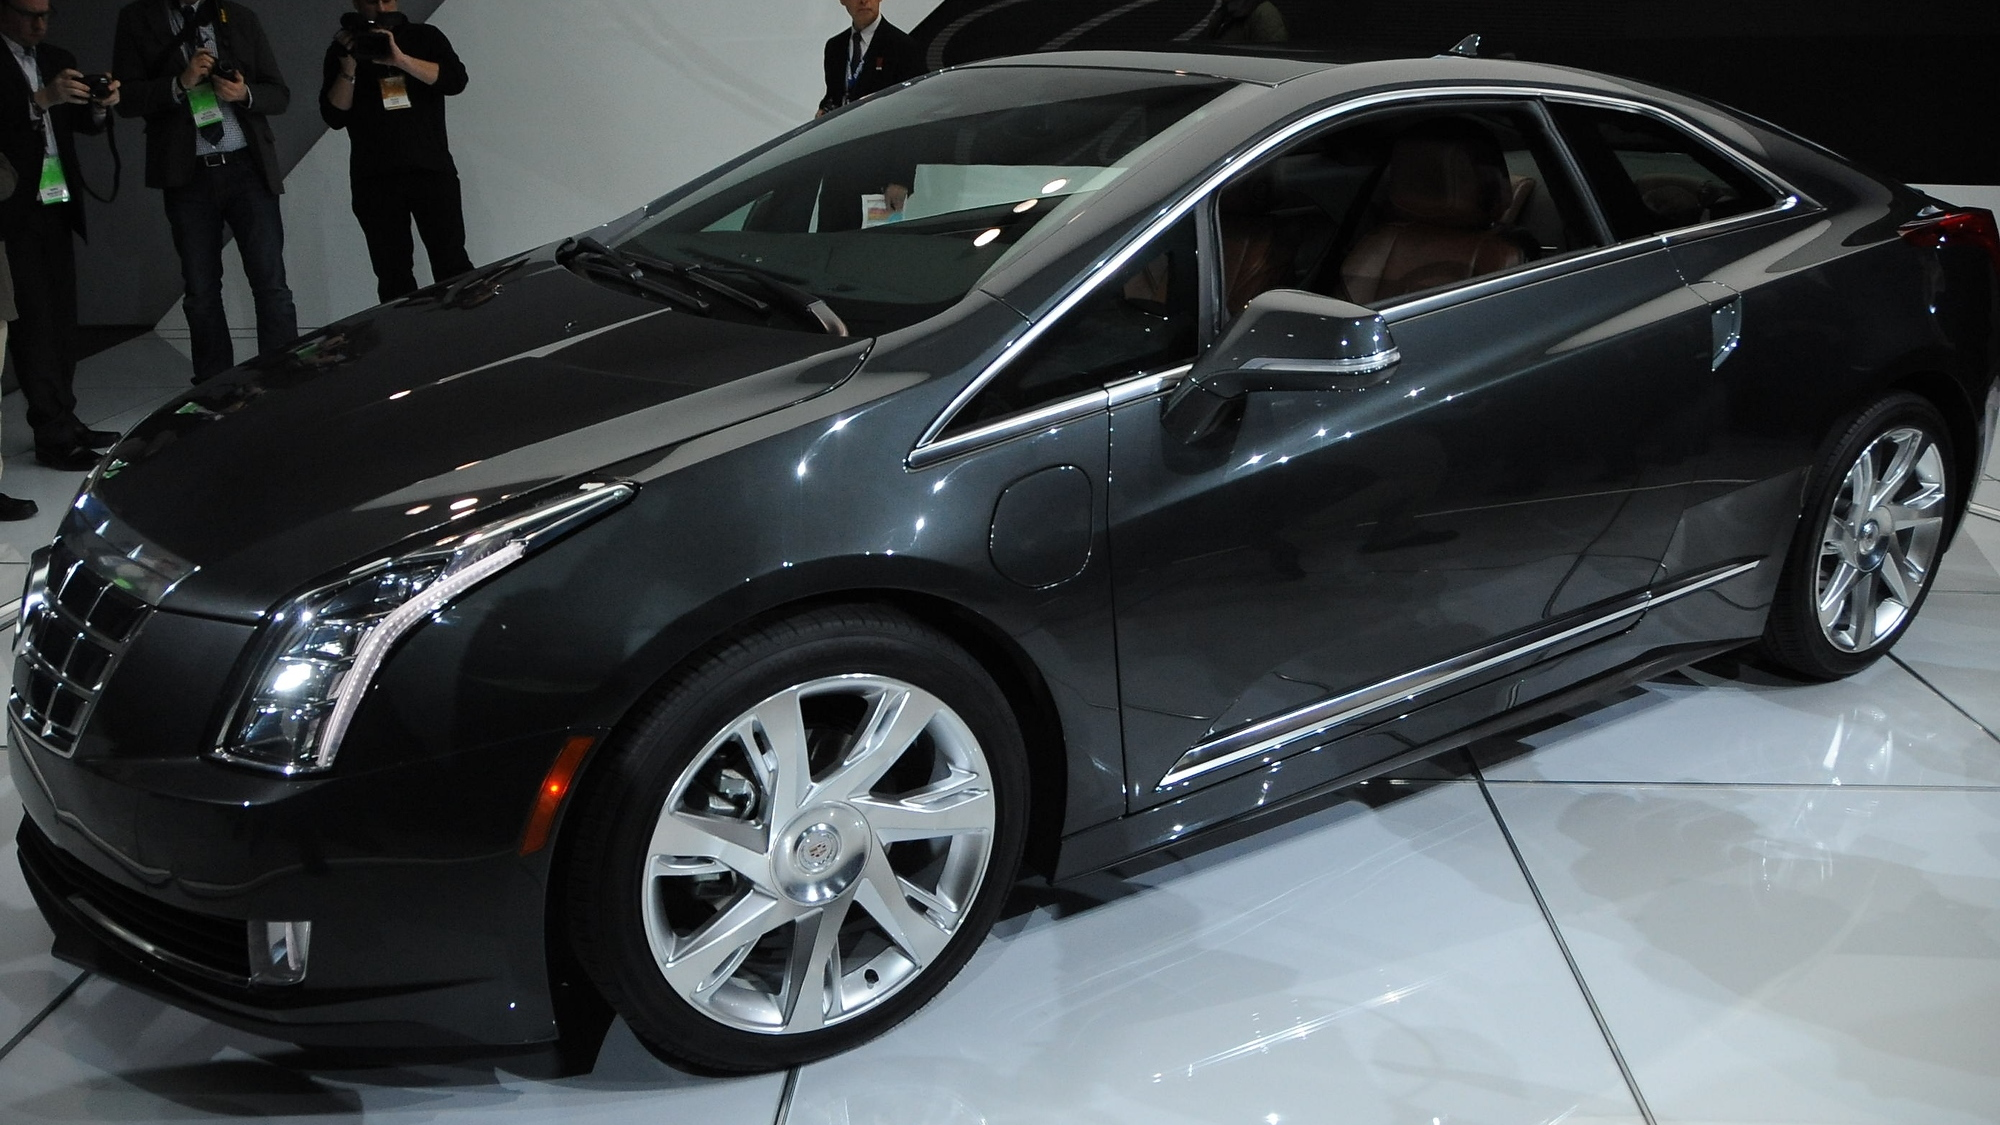 2017 Cadillac Elr Revealed At Detroit Auto Show